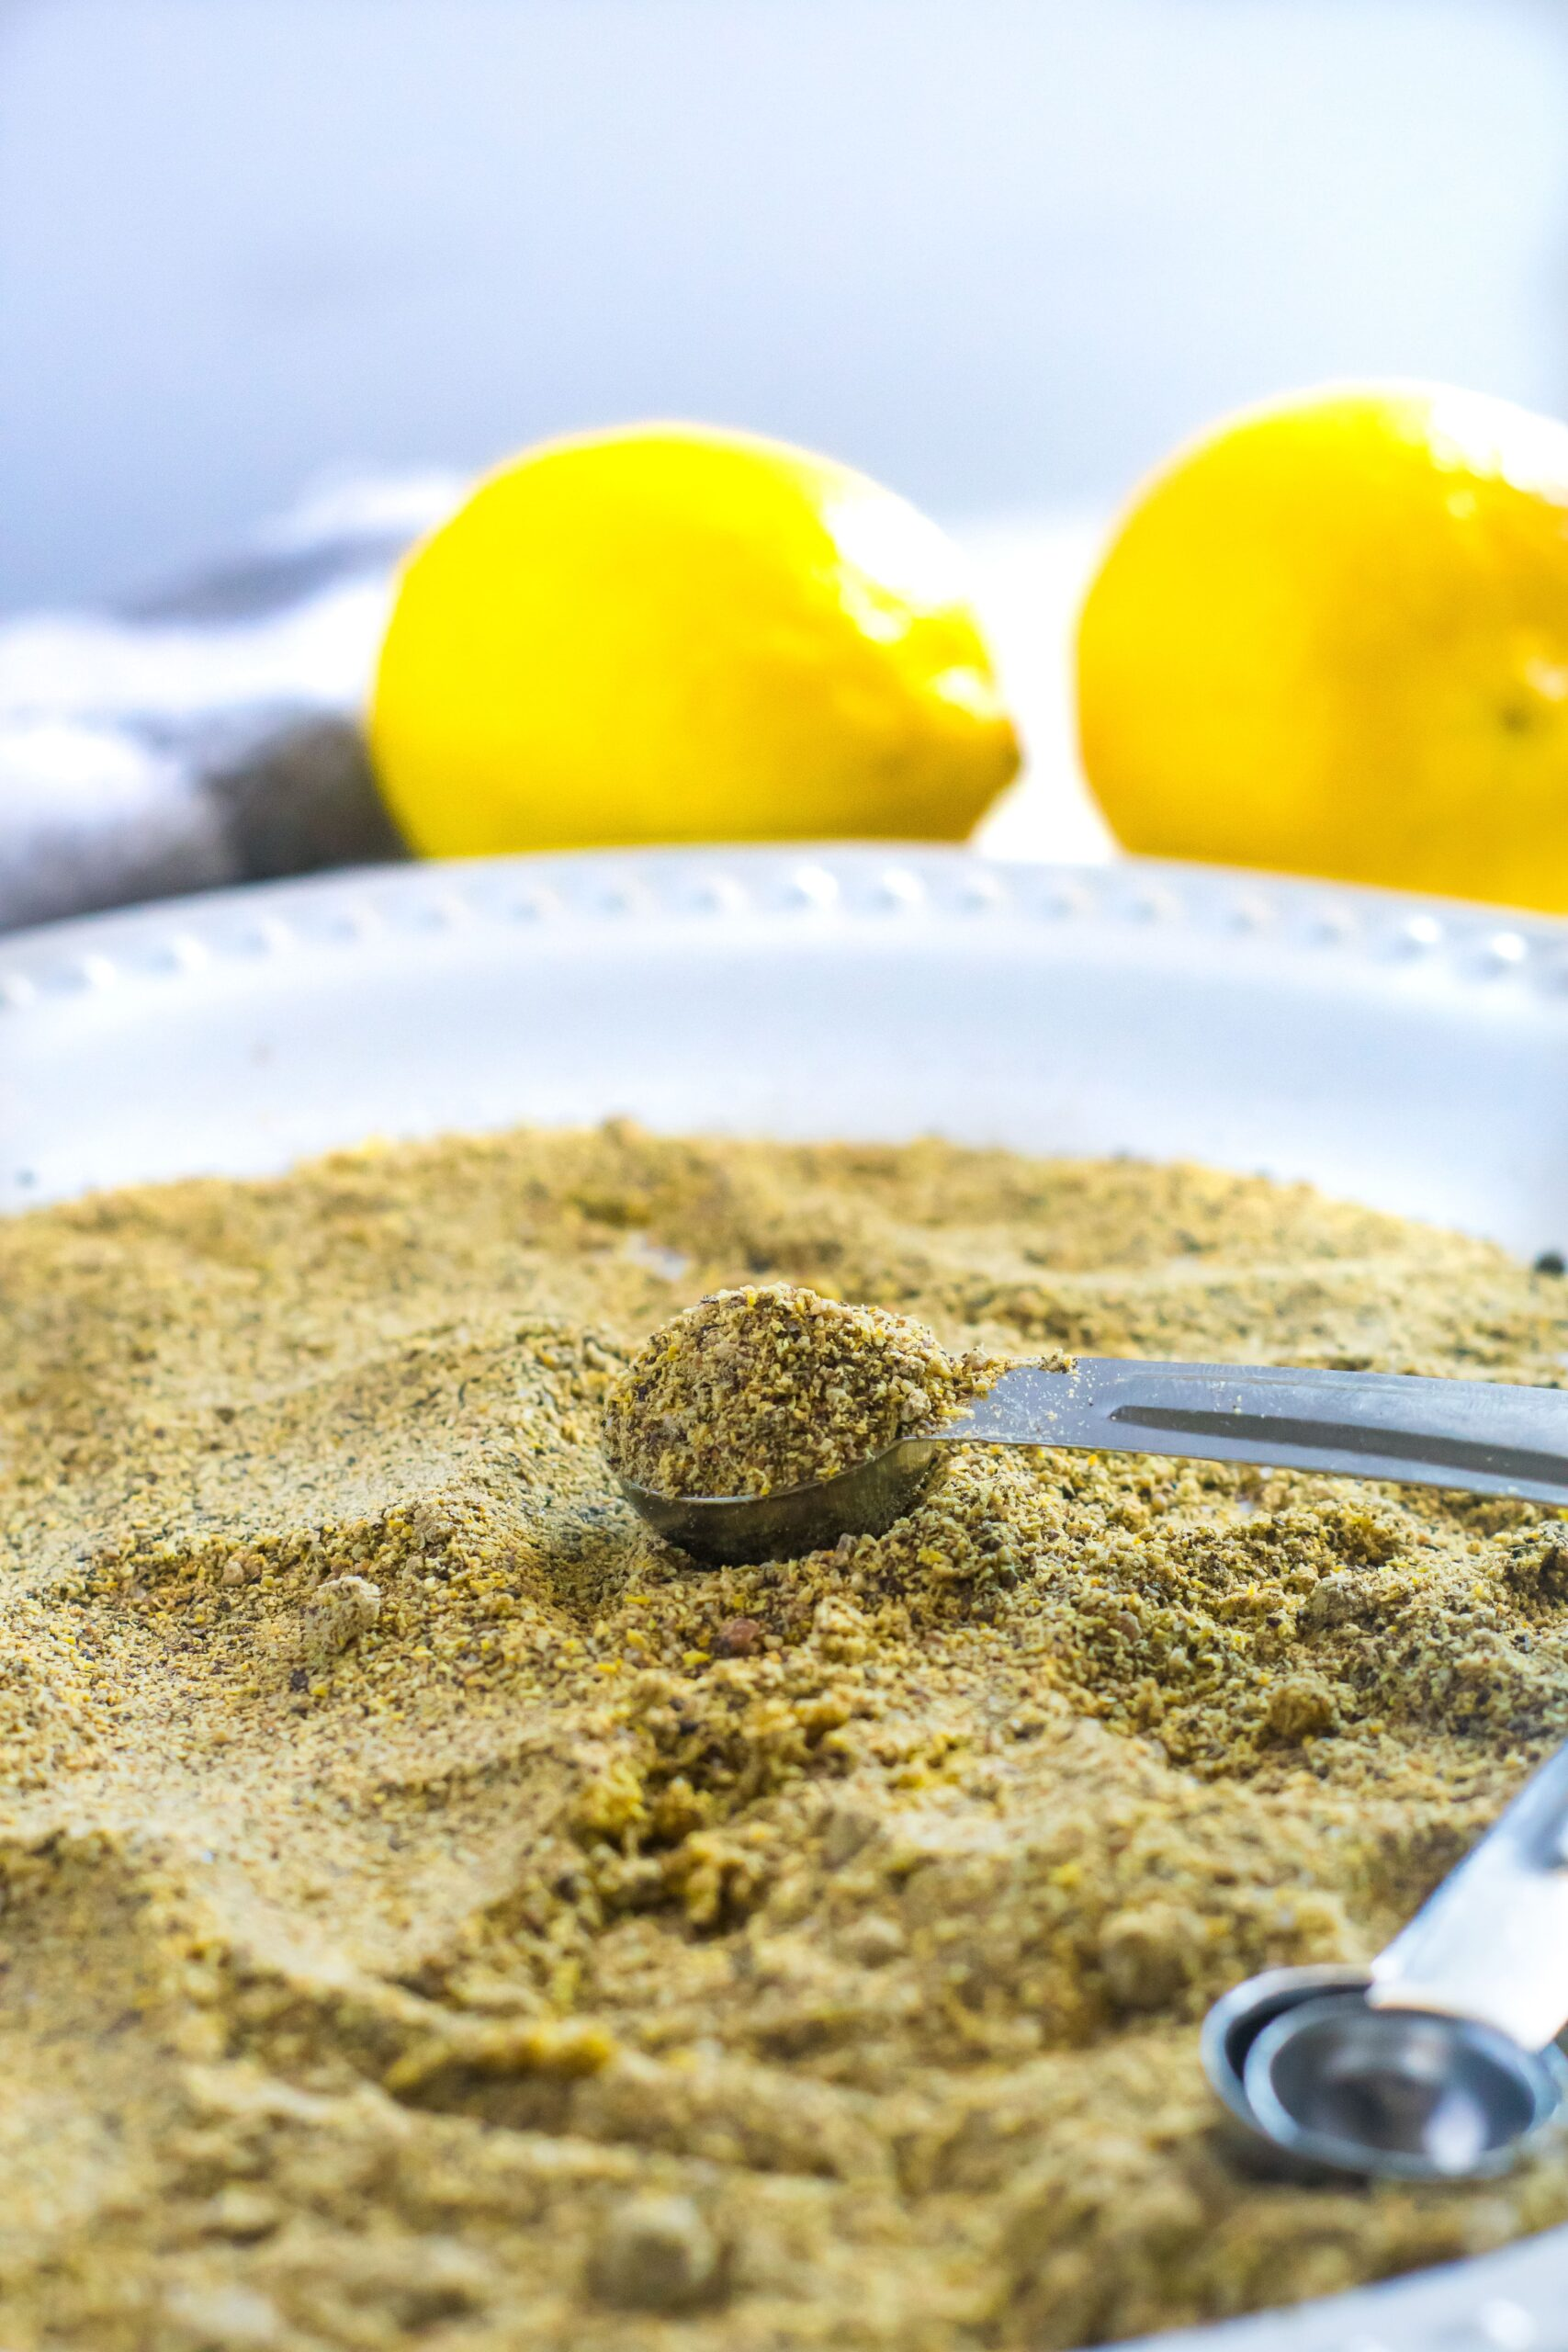 homemade lemon pepper seasoning in a teaspoon on a white plate with lemons in the background